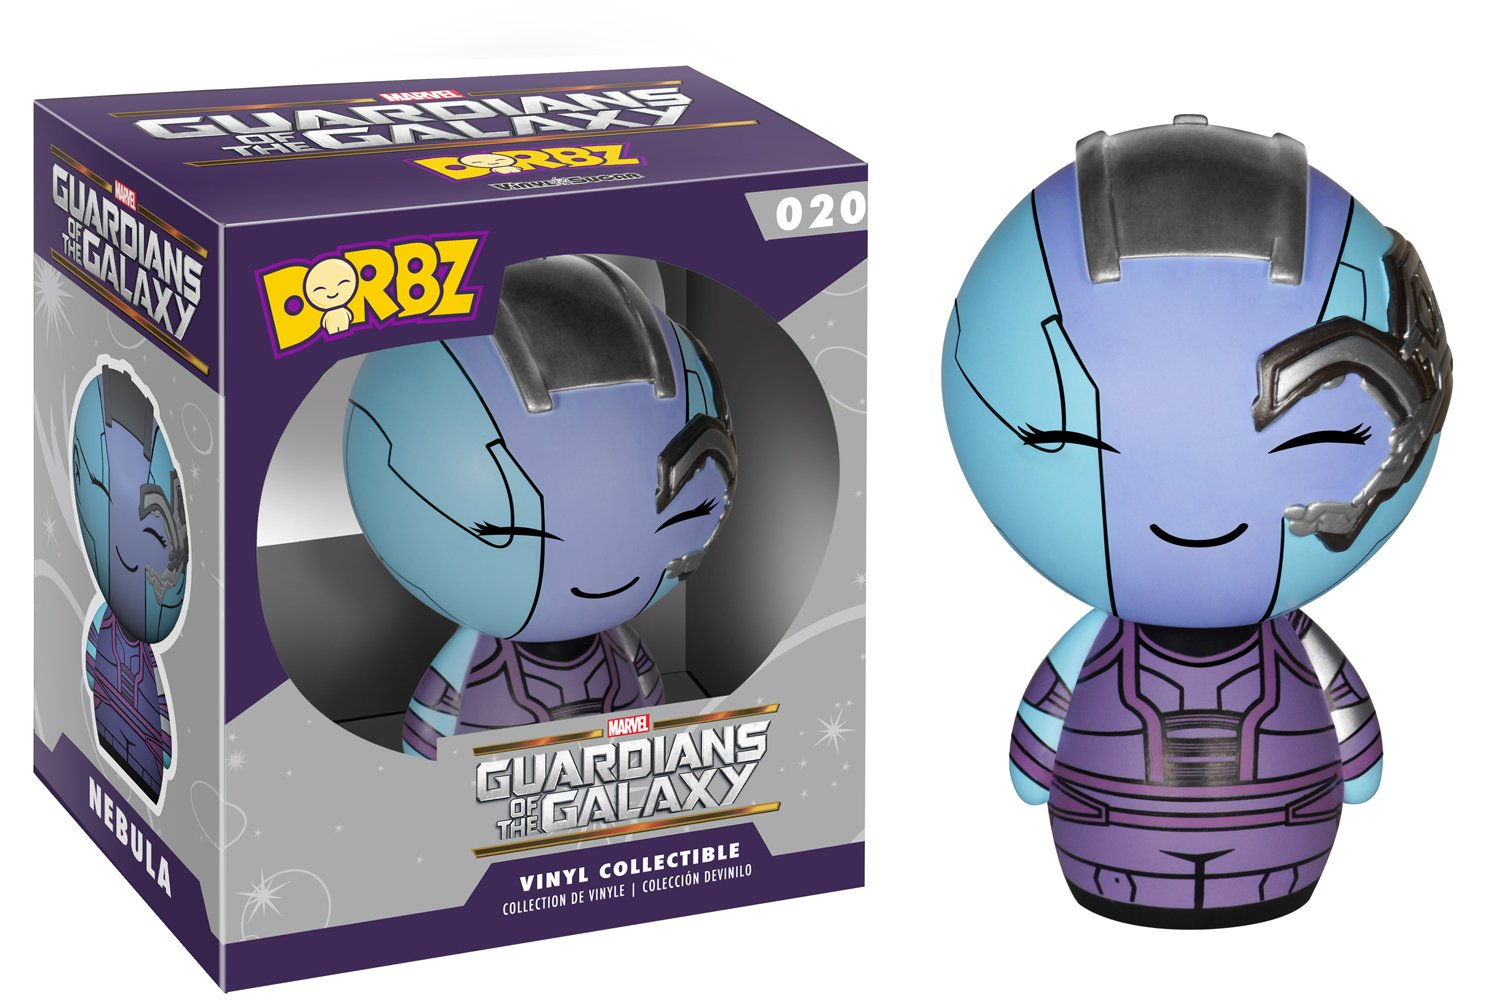 Funko Dorbz Guardians Of The Galaxy Nebula Action Figure 5943 Accessory Toys /& Games Miscellaneous